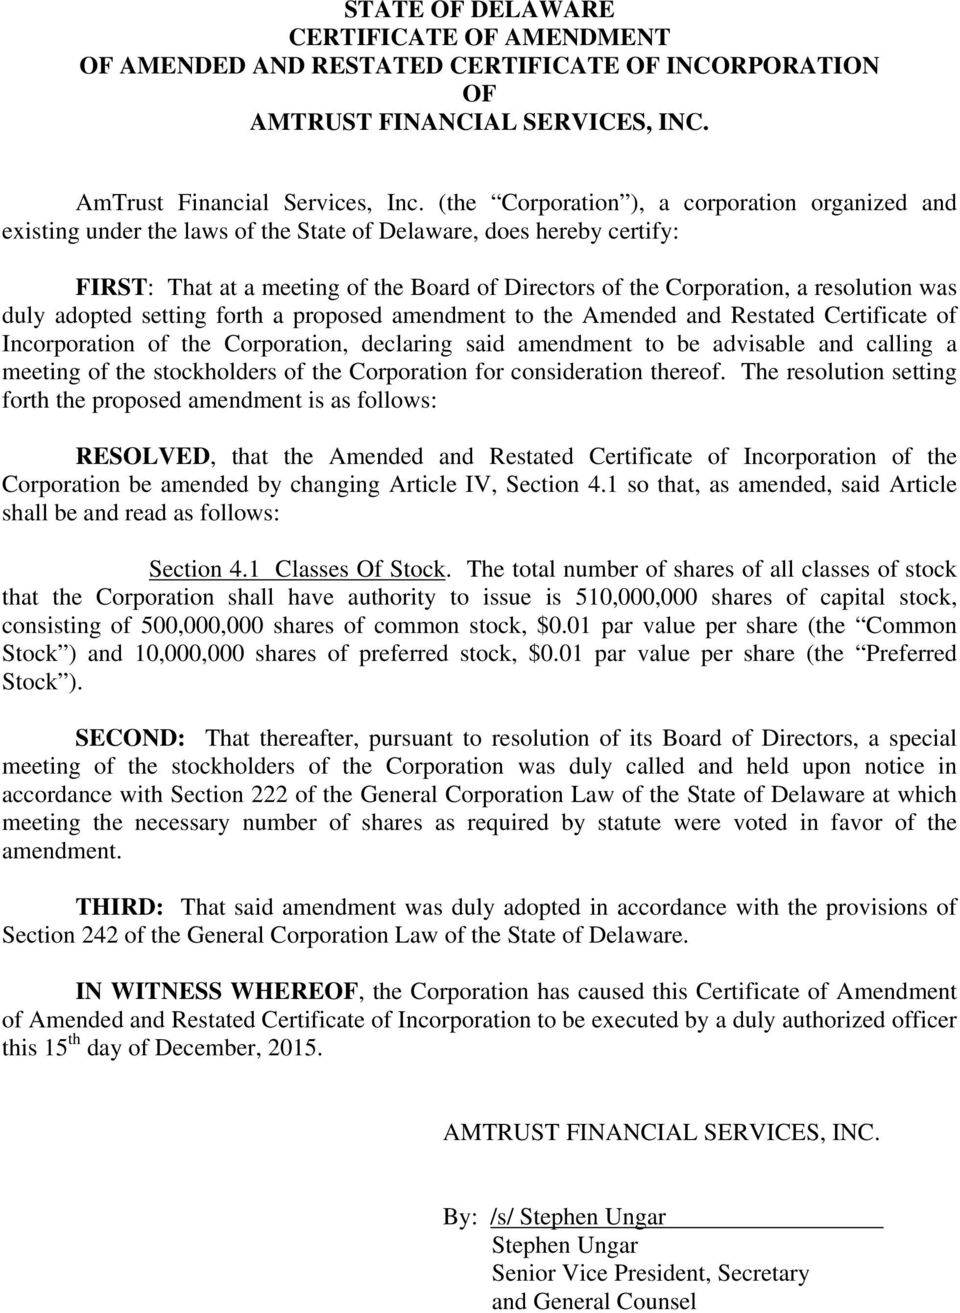 State Of Delaware Certificate Of Amendment Of Amended And Restated